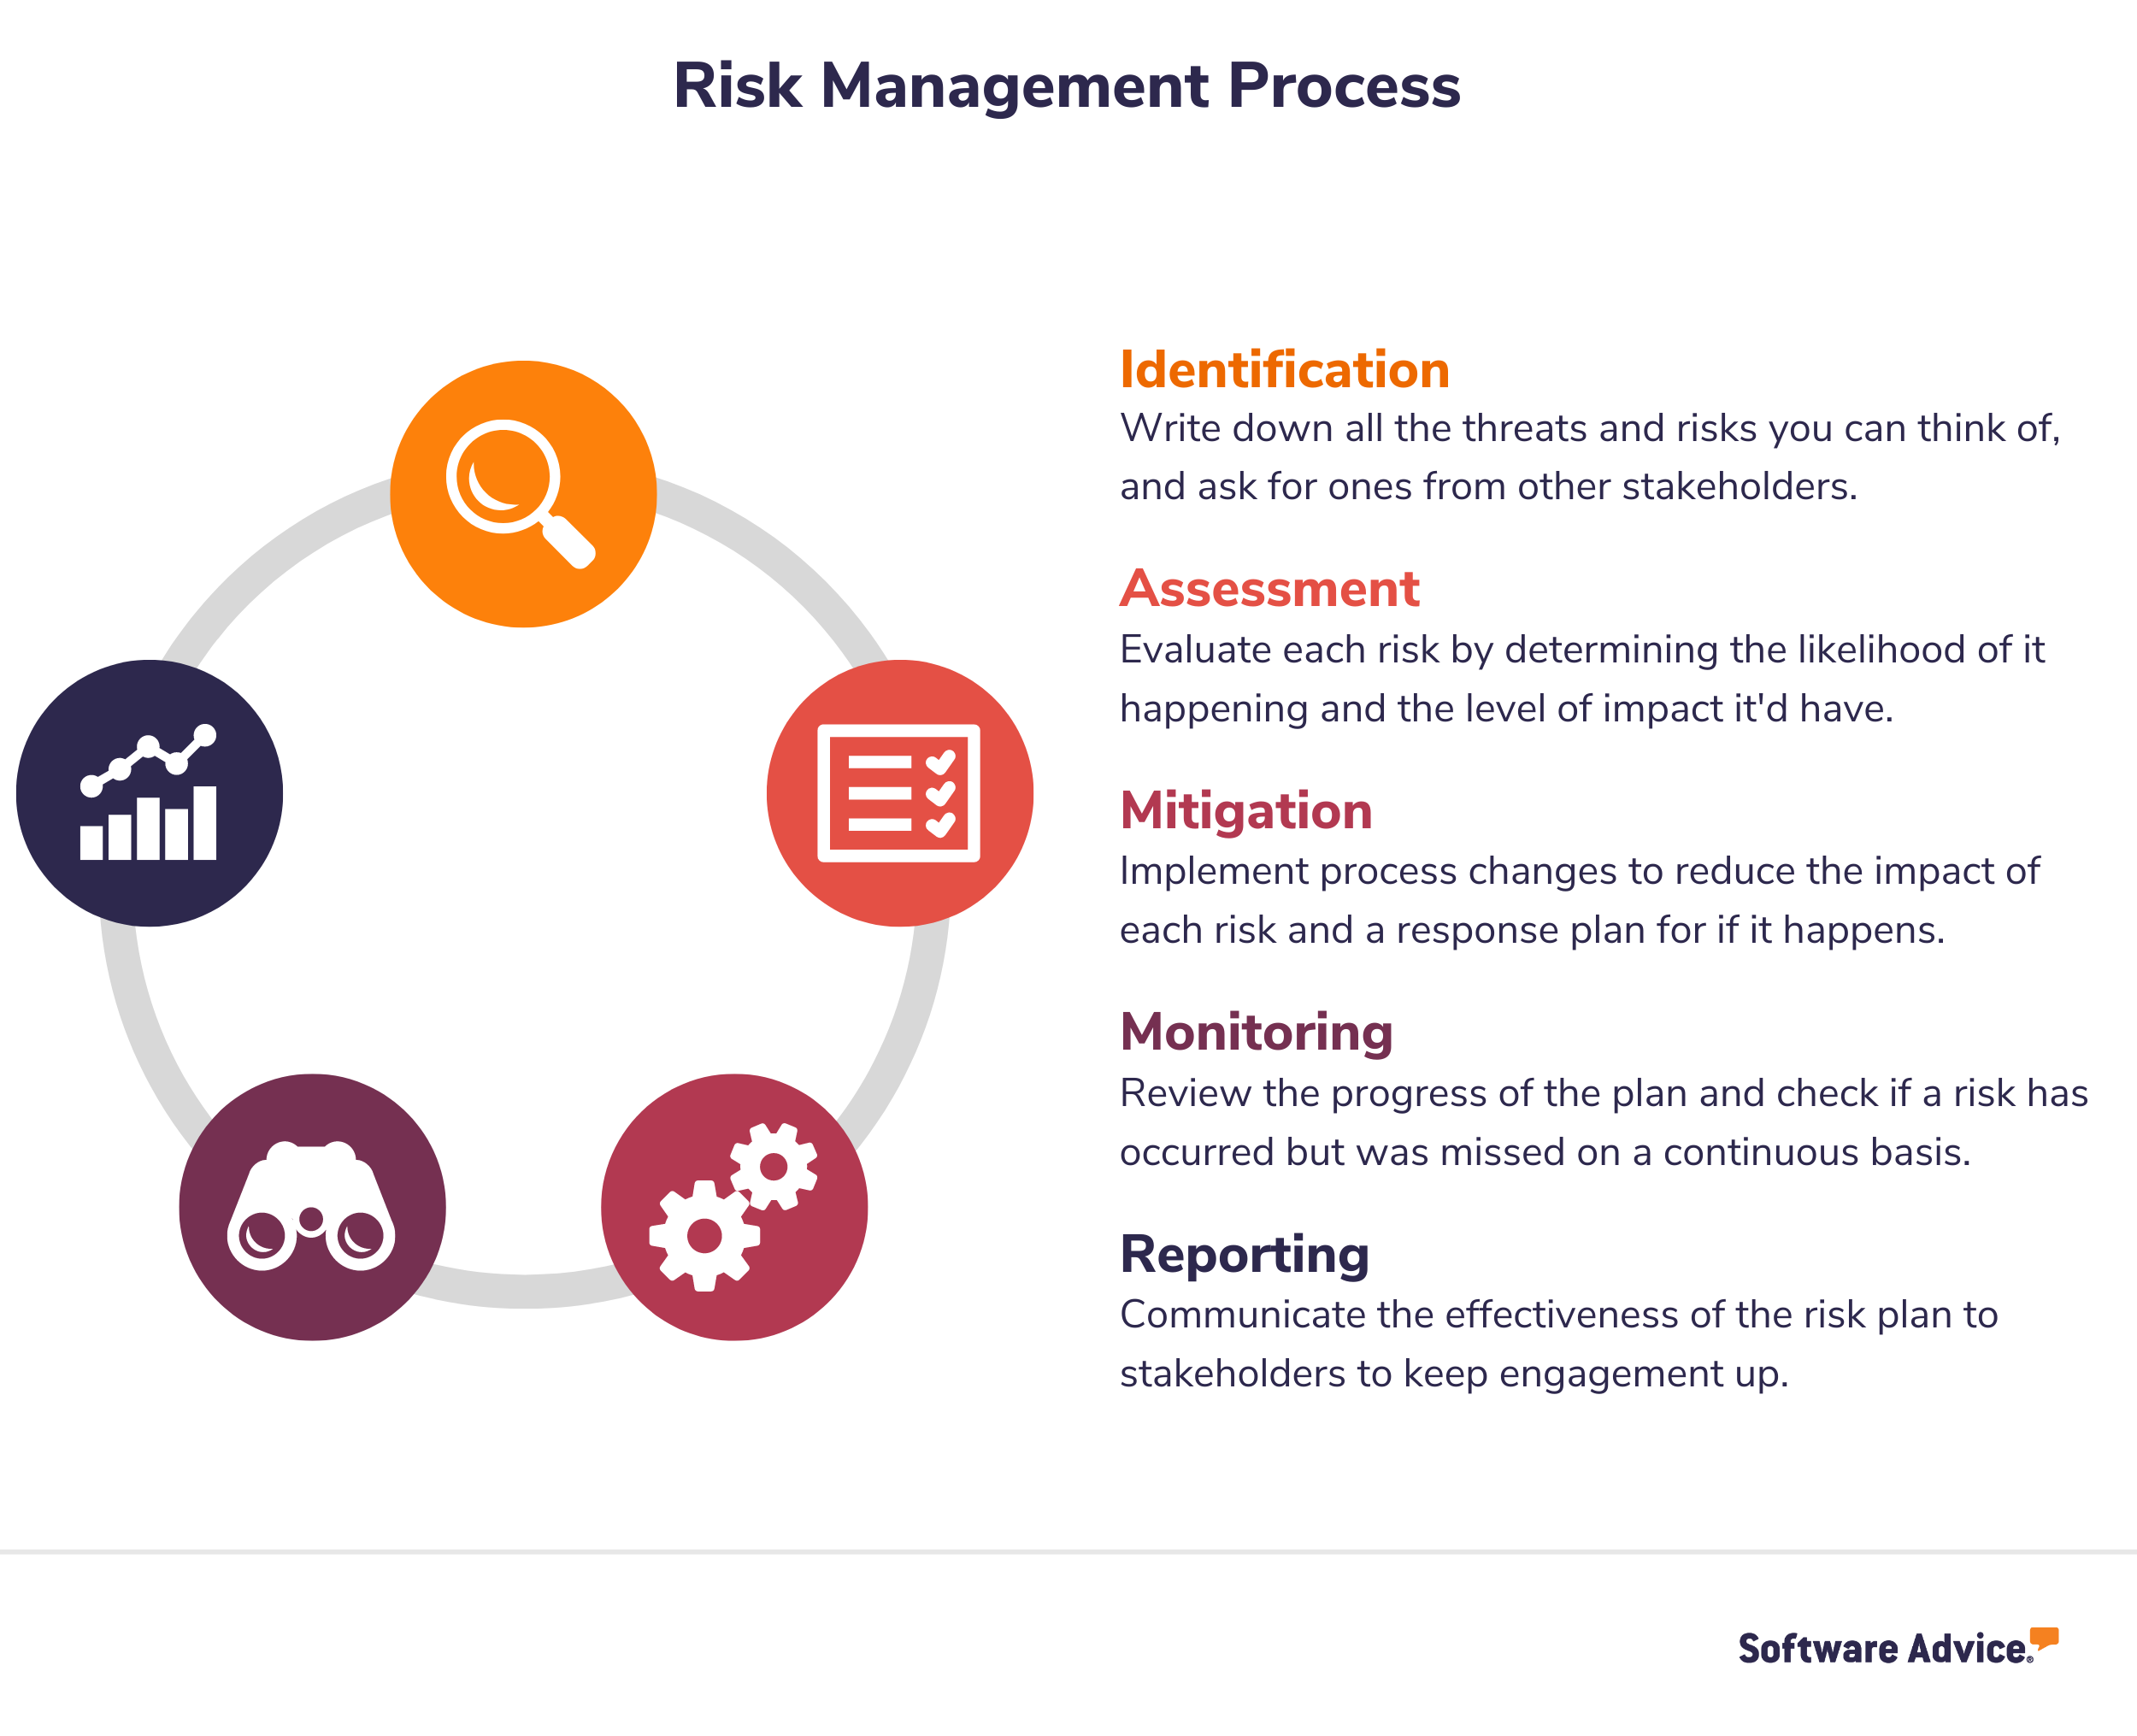 5 steps of the risk management process graphic